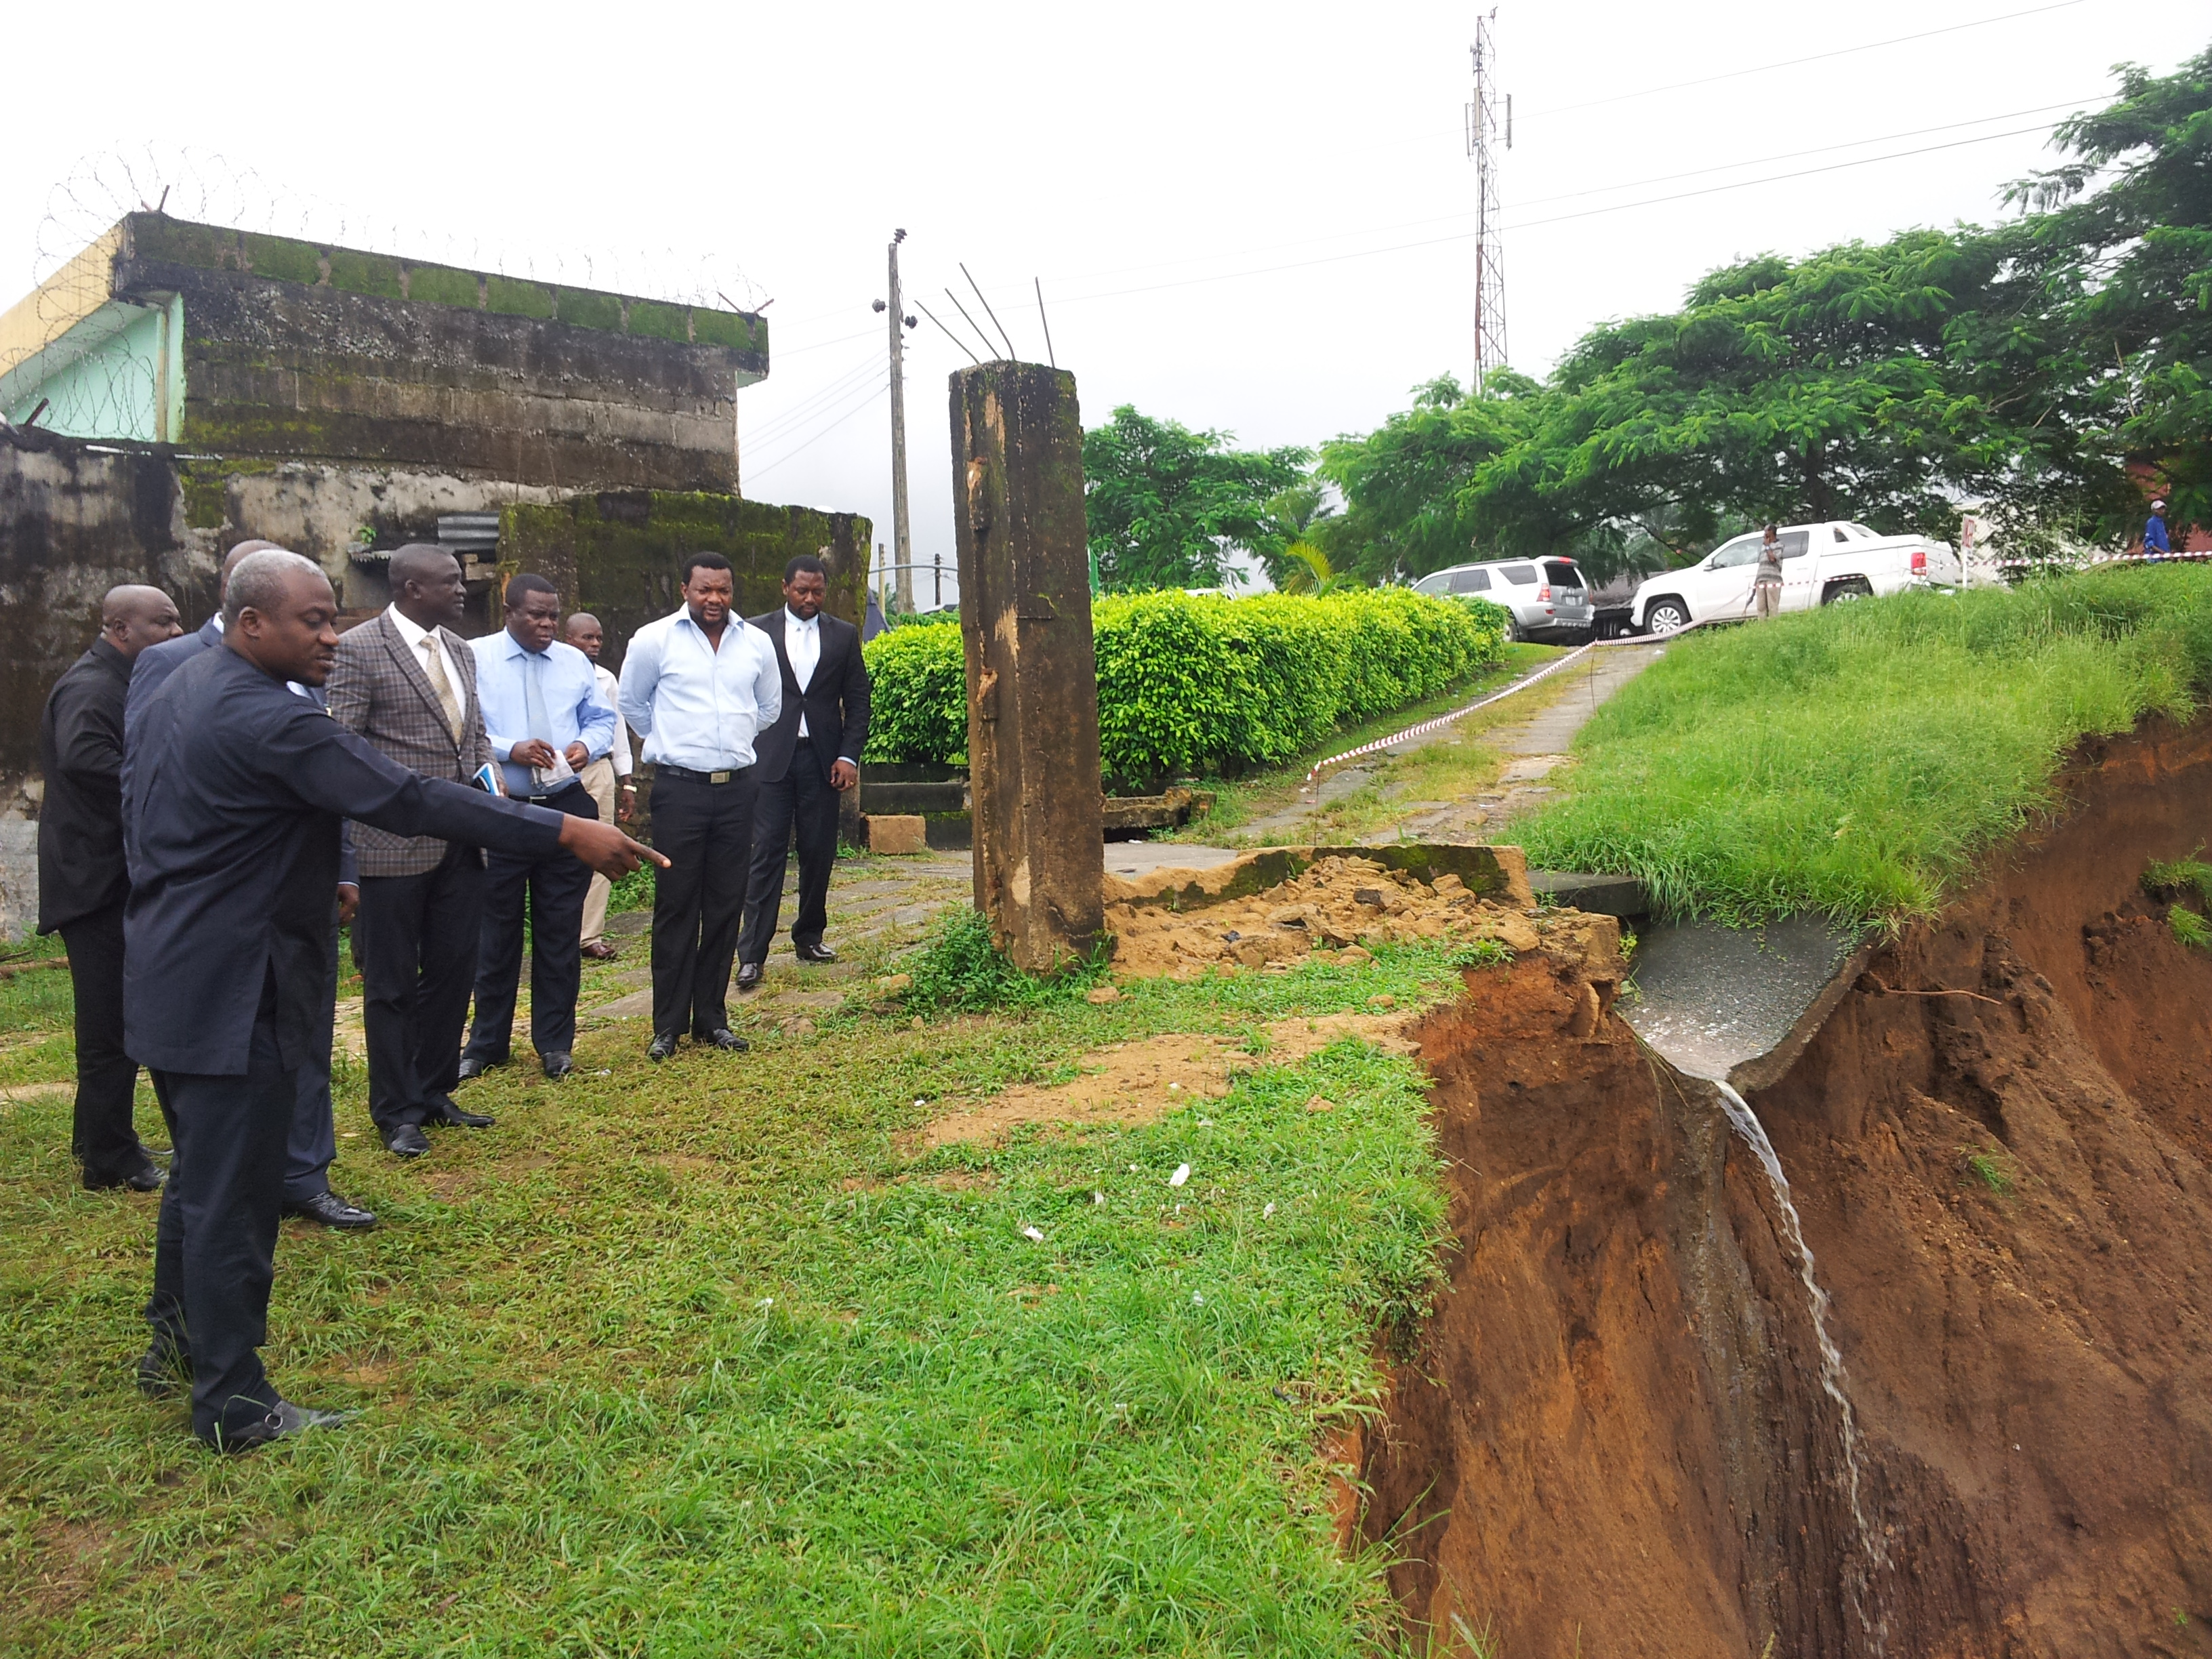 Commissioner for Works, Legor Idagbo and his Environment counterpart inspecting the erosion site earlier this morning